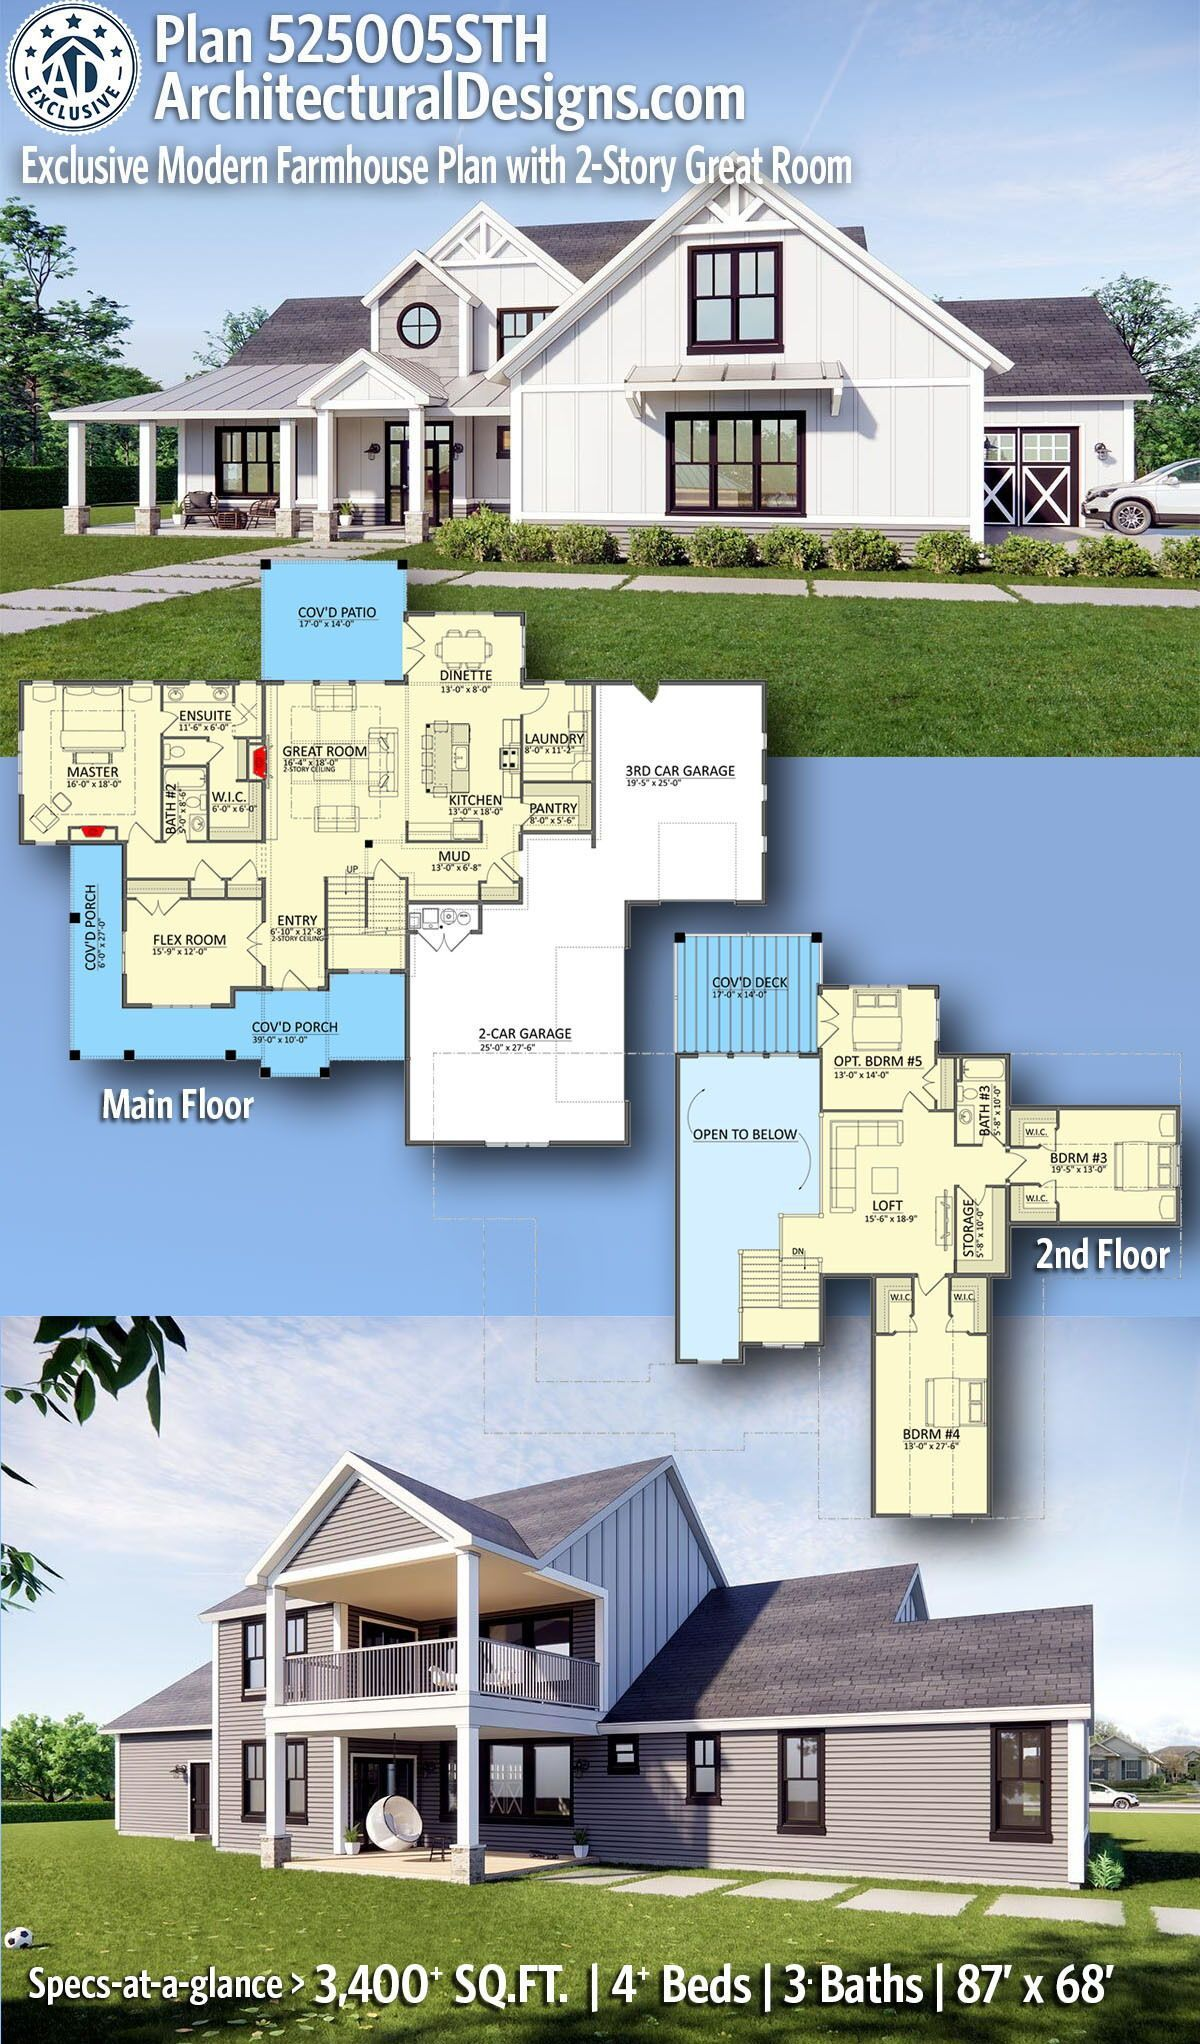 Plan 525005sth Exclusive Modern Farmhouse Plan With 2 Story Great Room Modern Farmhouse Plans Modern Farmhouse Floorplan House Plans Farmhouse